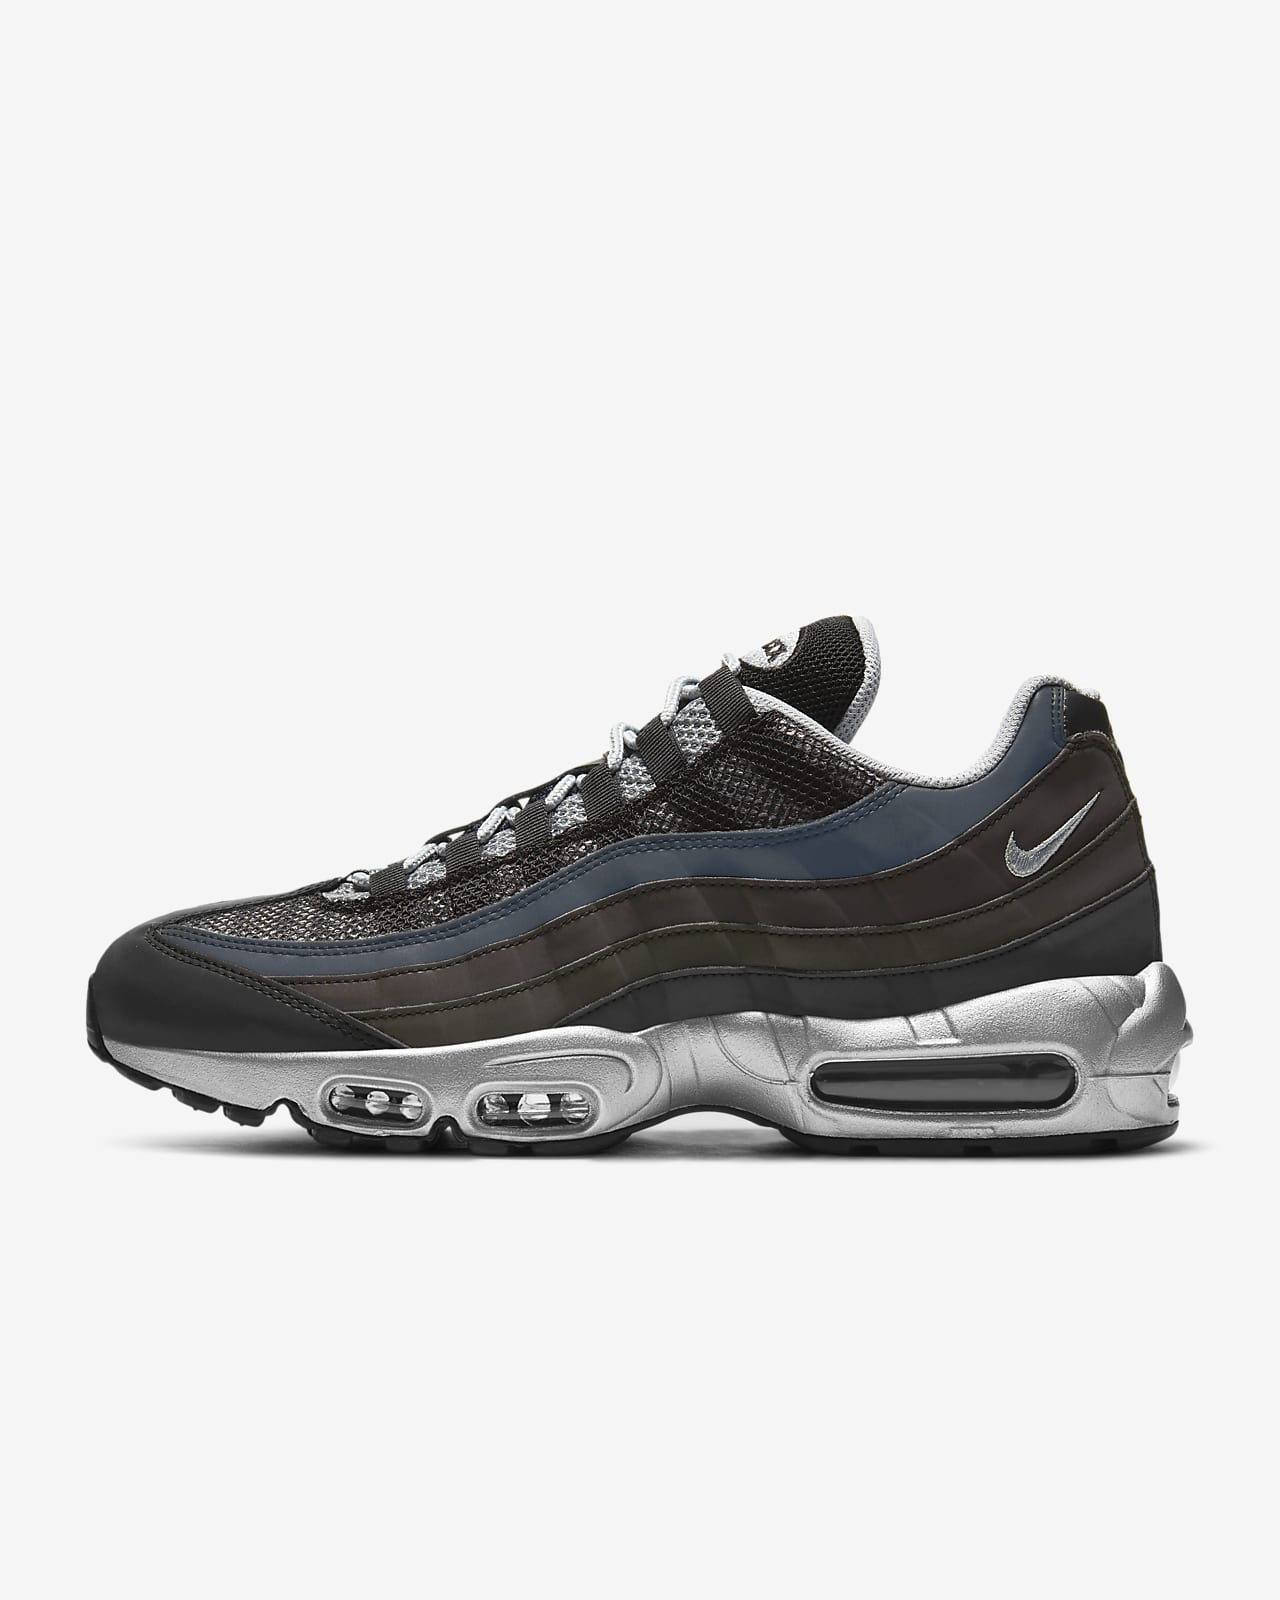 Nike Air Max 95 Premium Men's Shoe